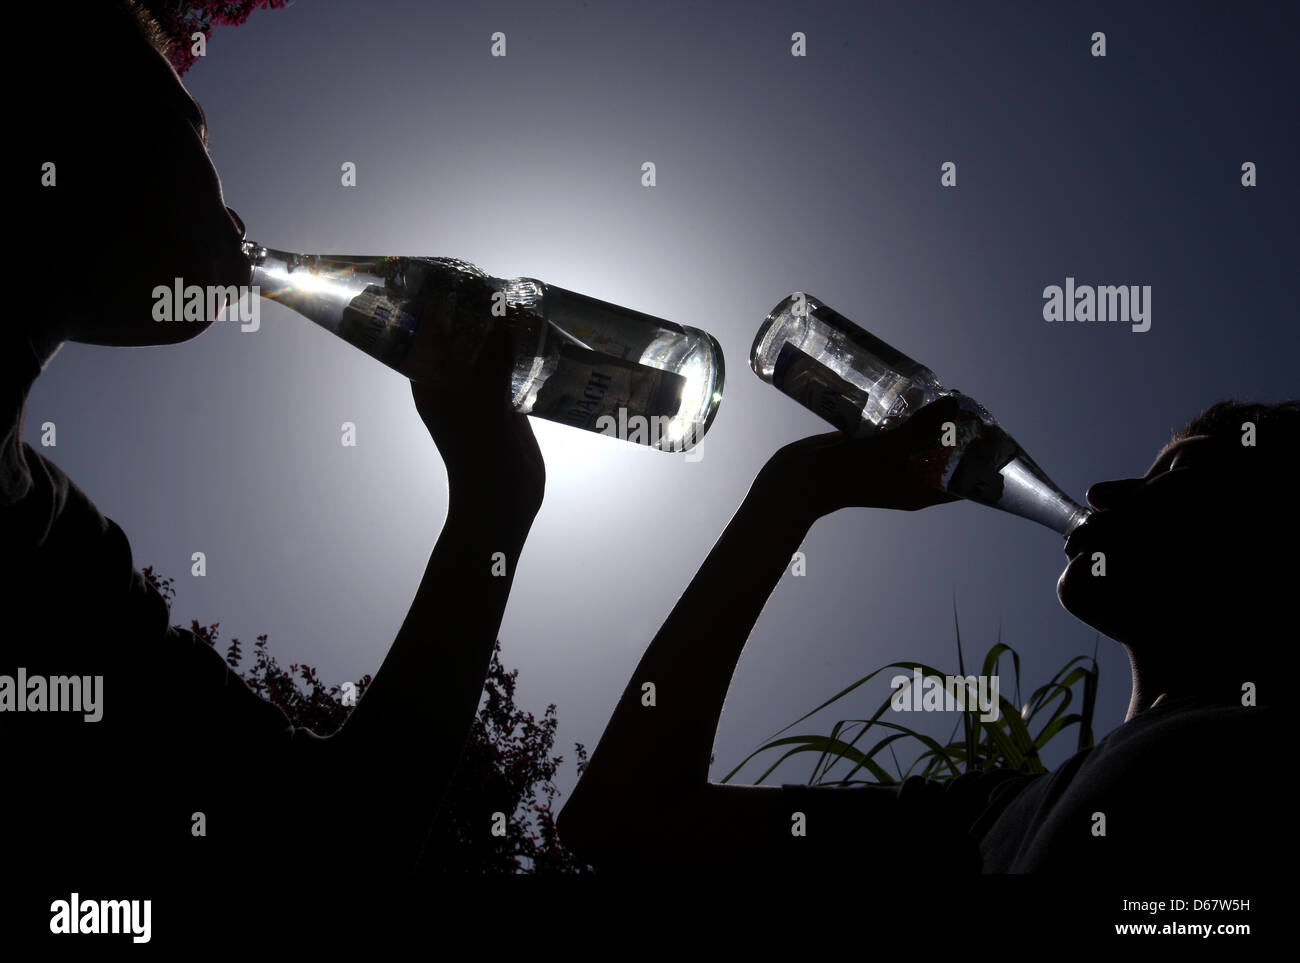 An archive photo dated 23 August 2011 shows young people drinking mineral water from bottles in bright sunlight - Stock Image